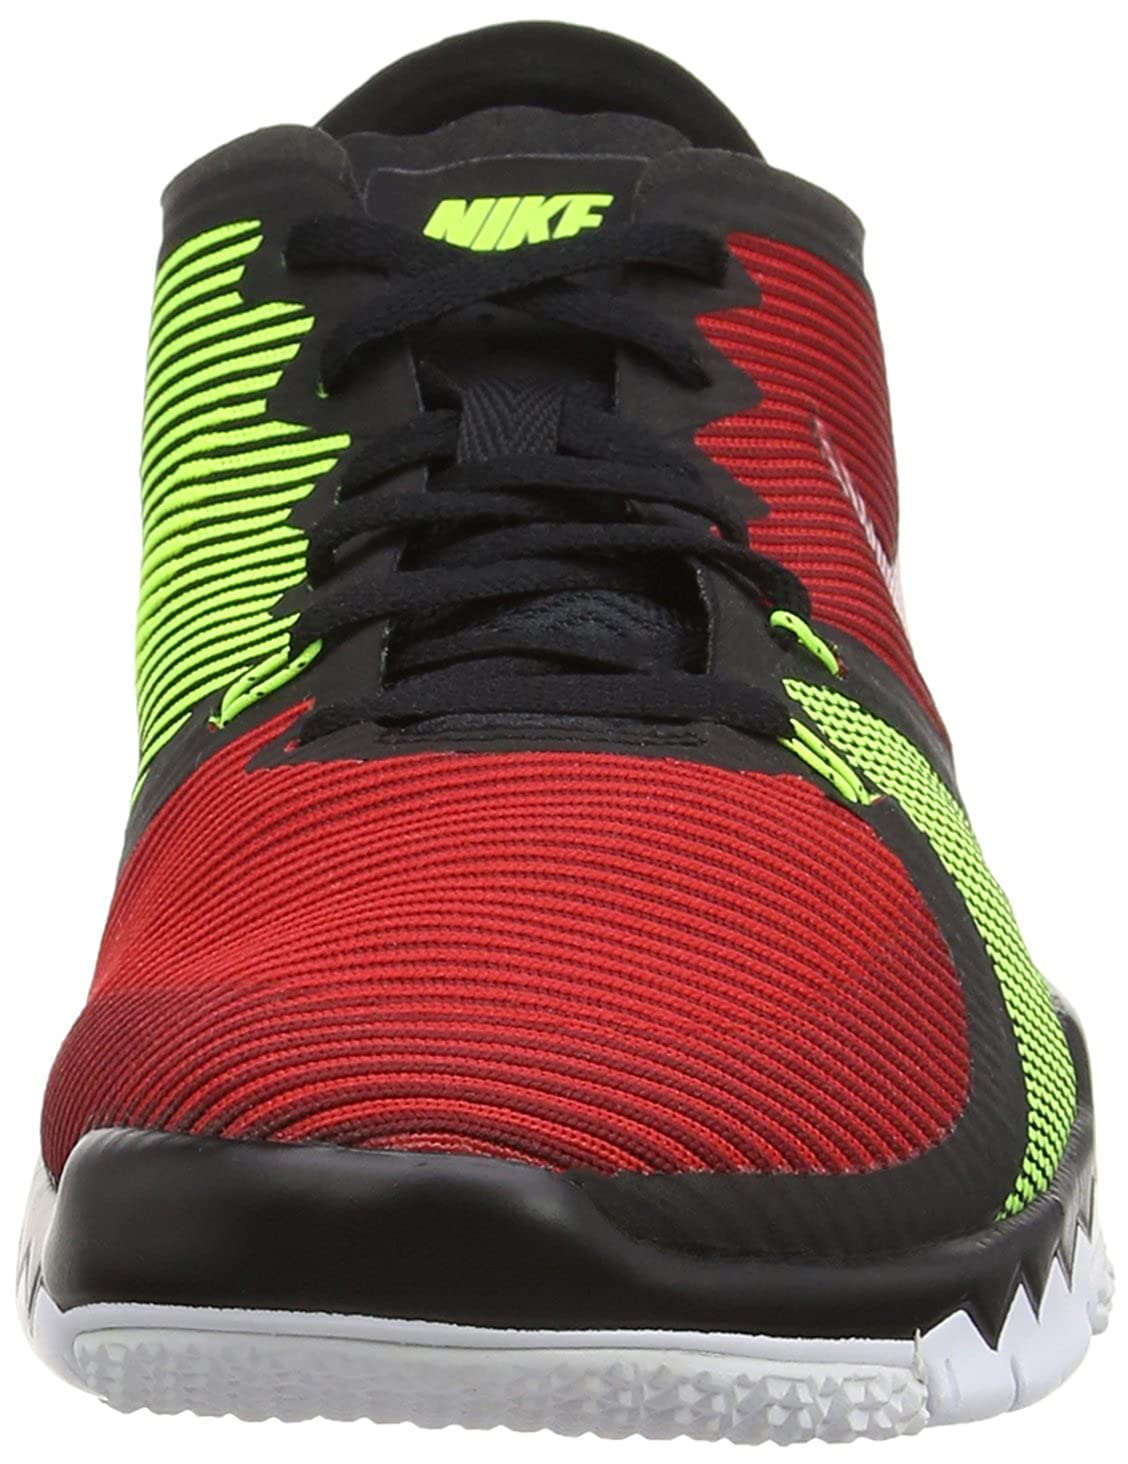 new products 282b1 cb298 Amazon.com   NIKE Men s Free Trainer 3.0 V4 Training Shoe   Fitness    Cross-Training